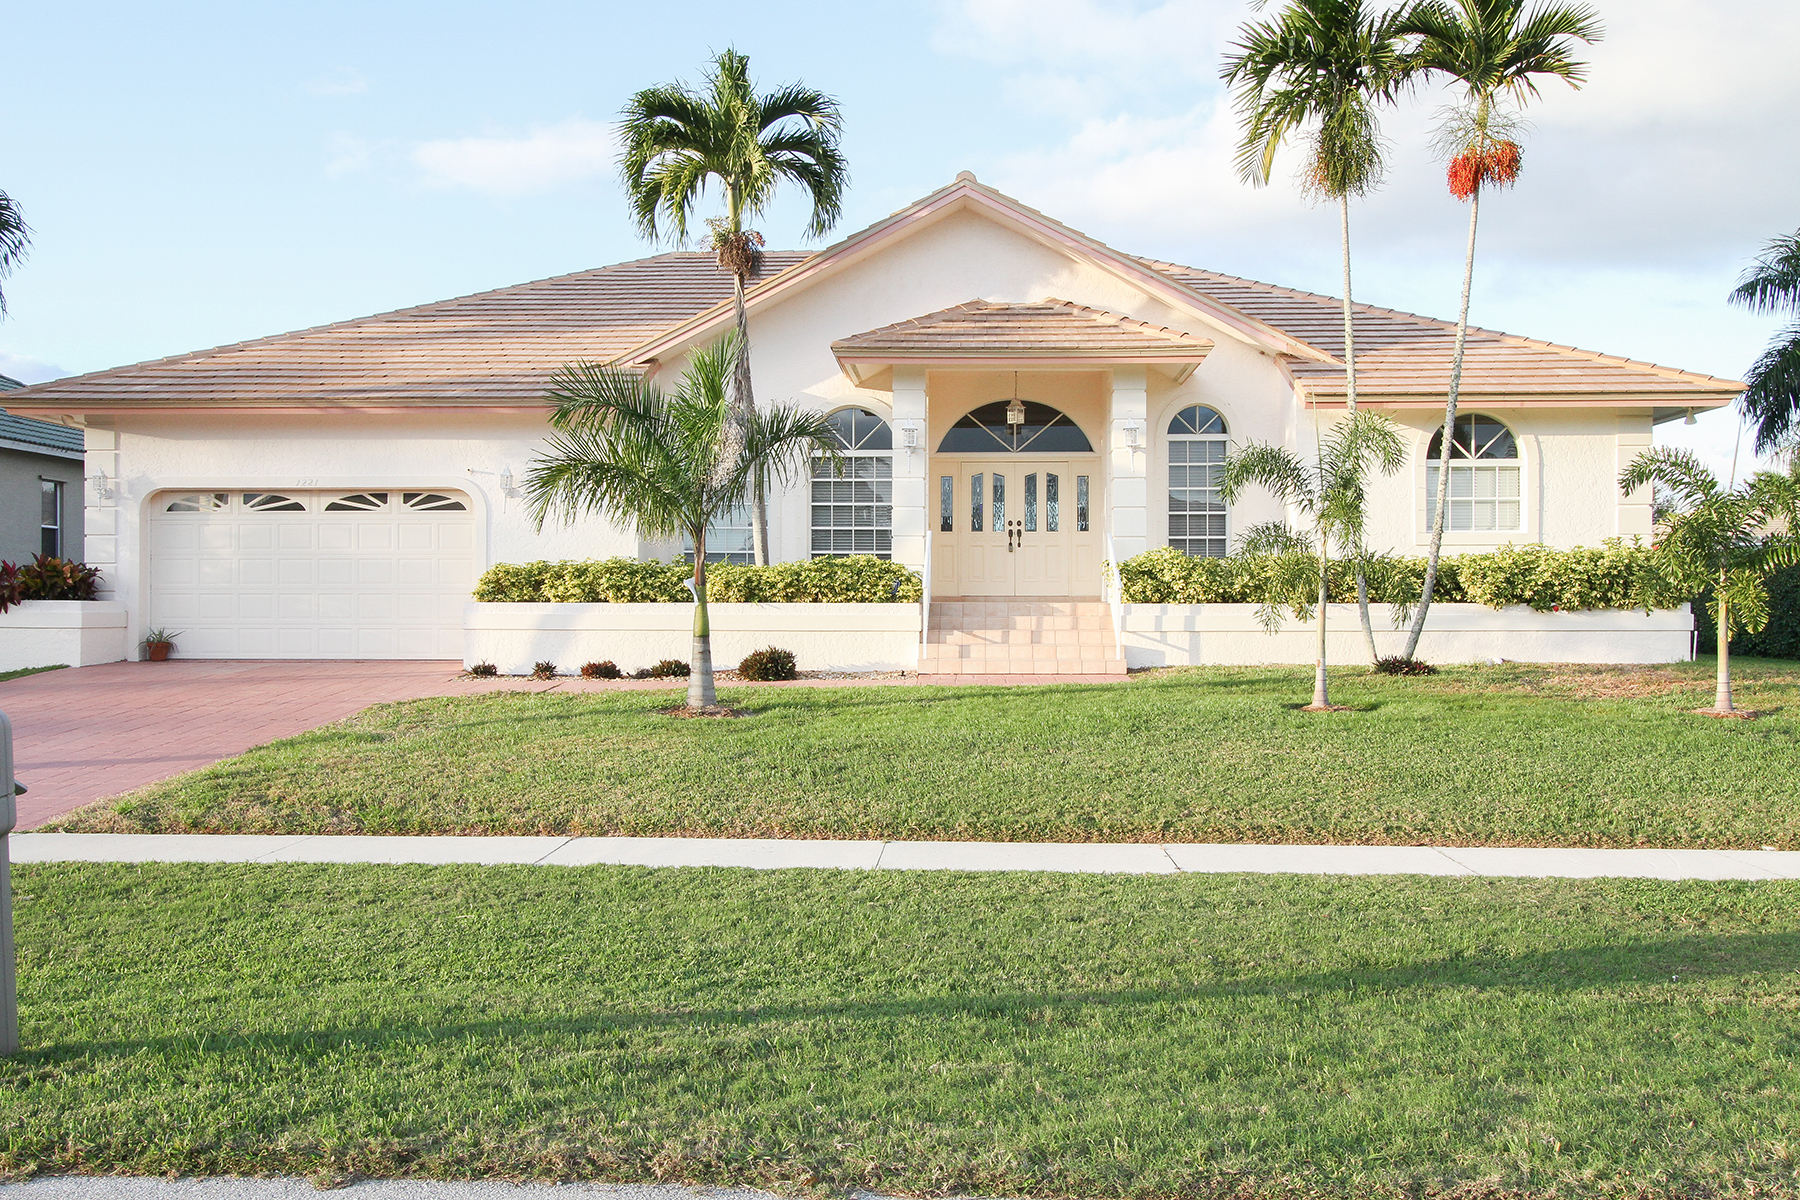 Single Family Home for Sale at MARCO ISLAND - LUDLAM COURT 1221 Ludlam Ct Marco Island, Florida, 34145 United States